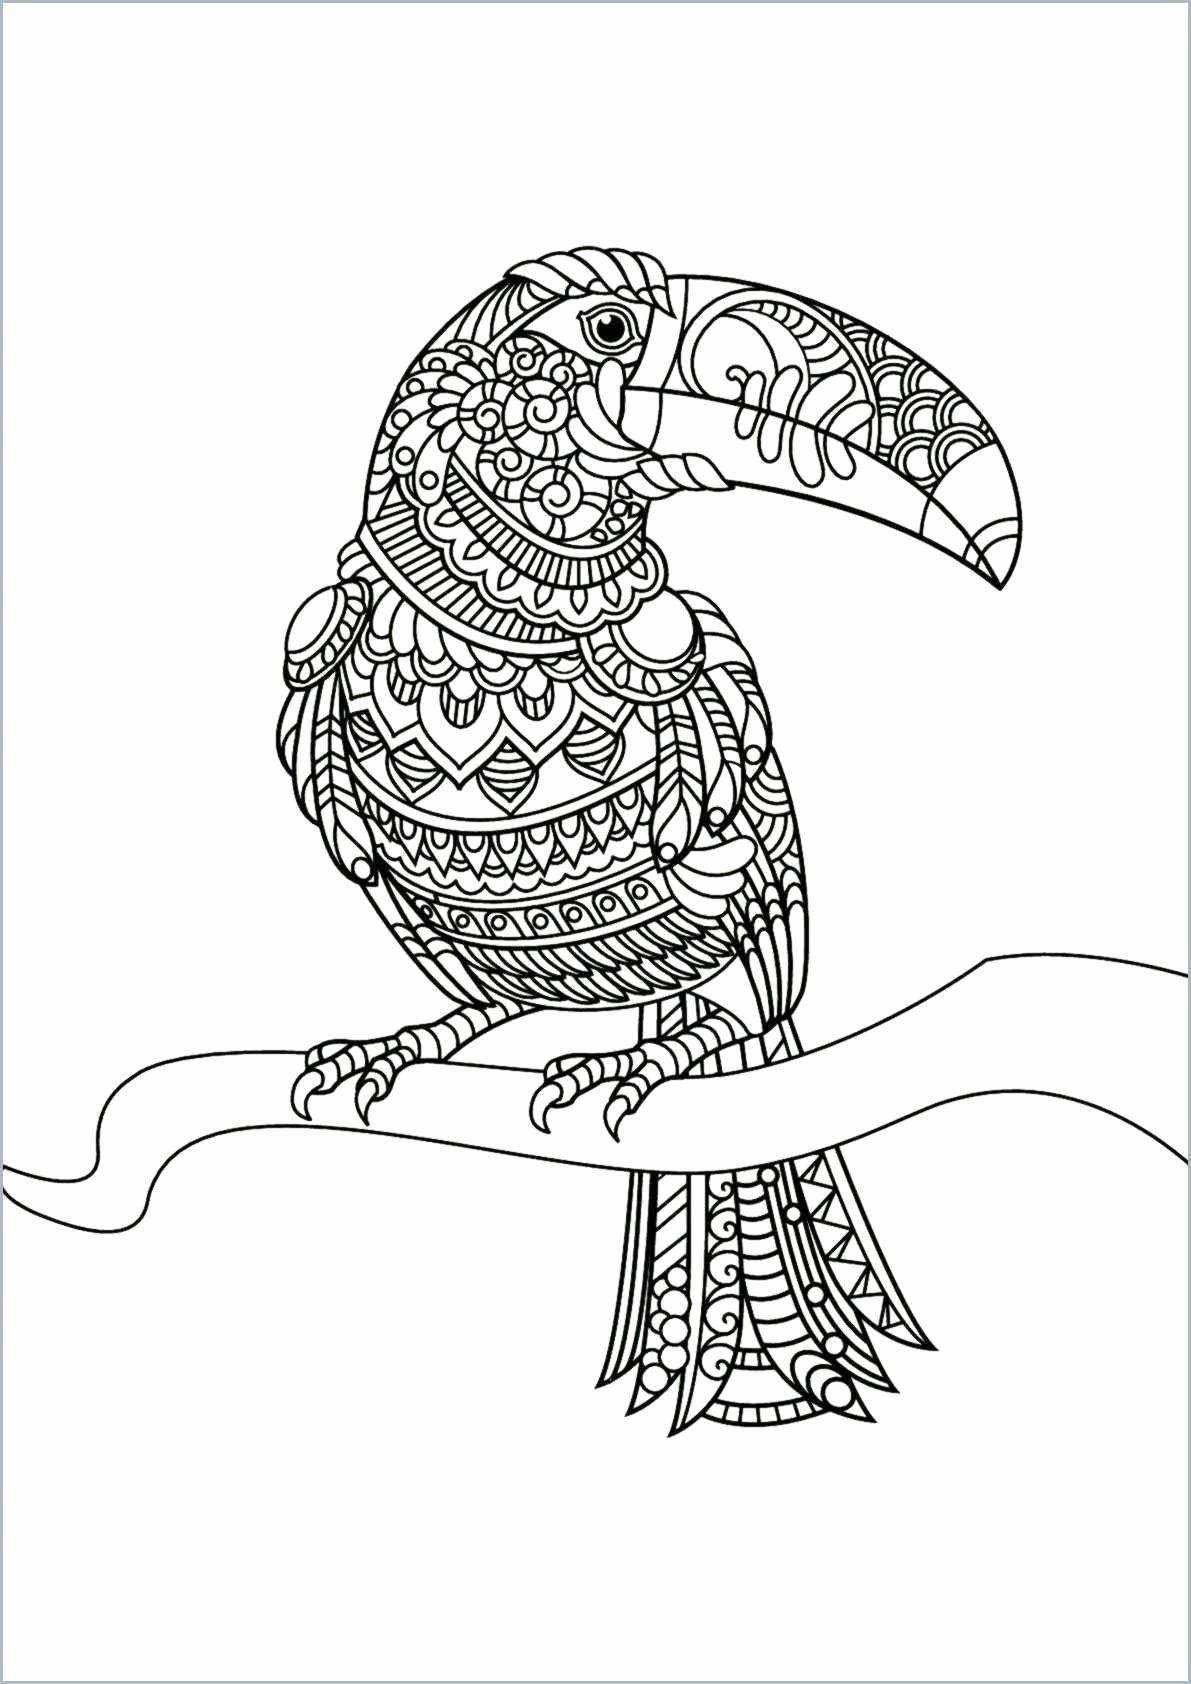 Coloring Animals Eyes New Cute Coloring Sheets In 2020 Bird Coloring Pages Cute Coloring Pages Animal Coloring Pages